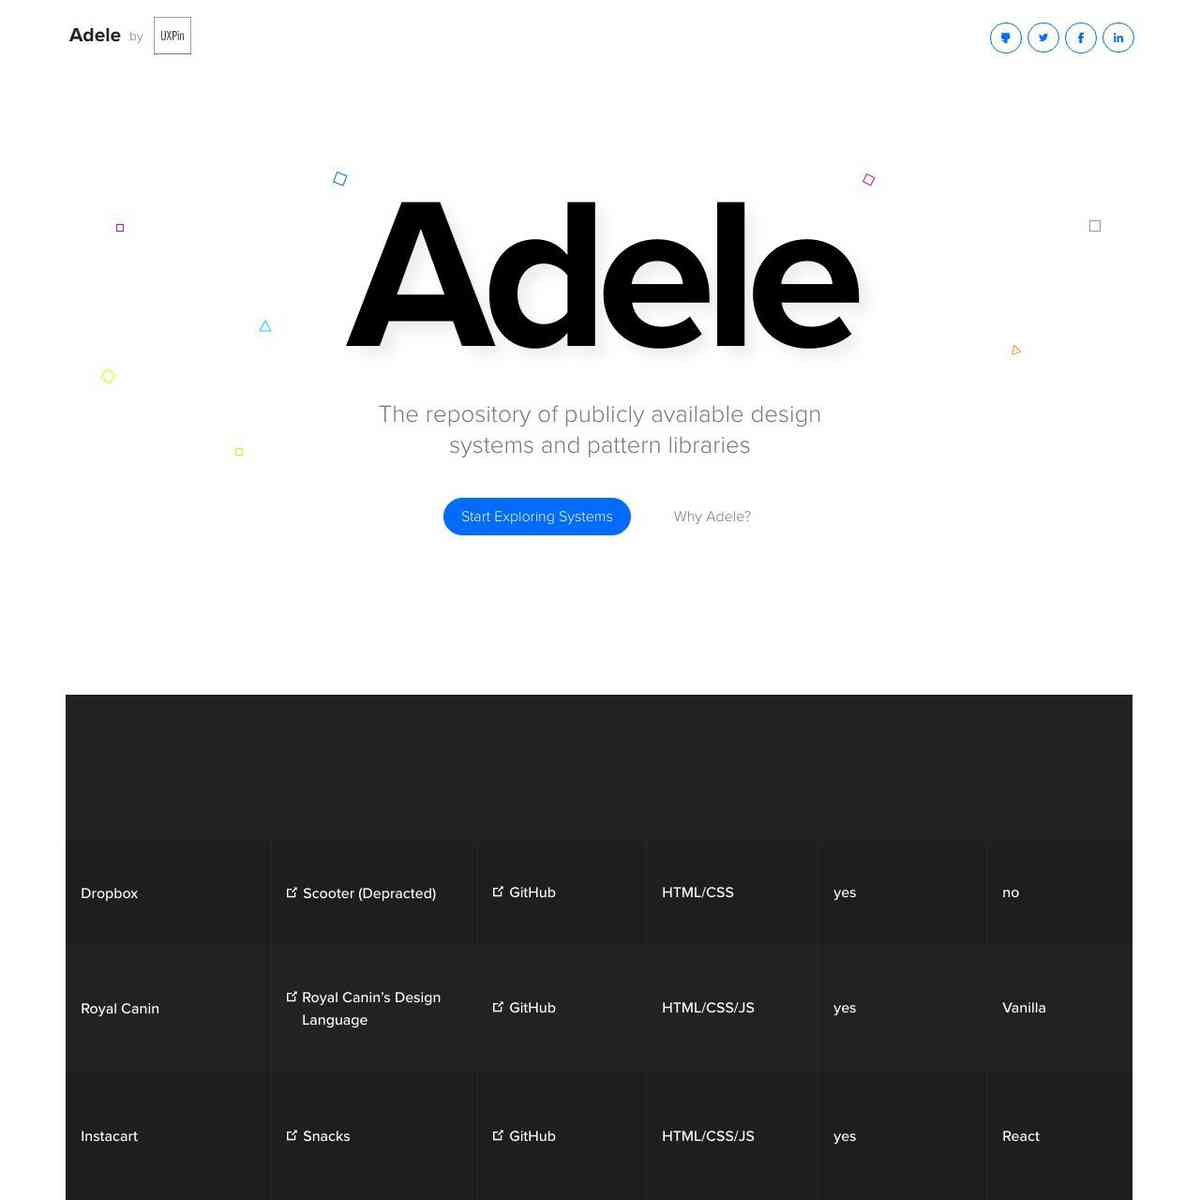 Adele – Design Systems and Pattern Libraries Repository